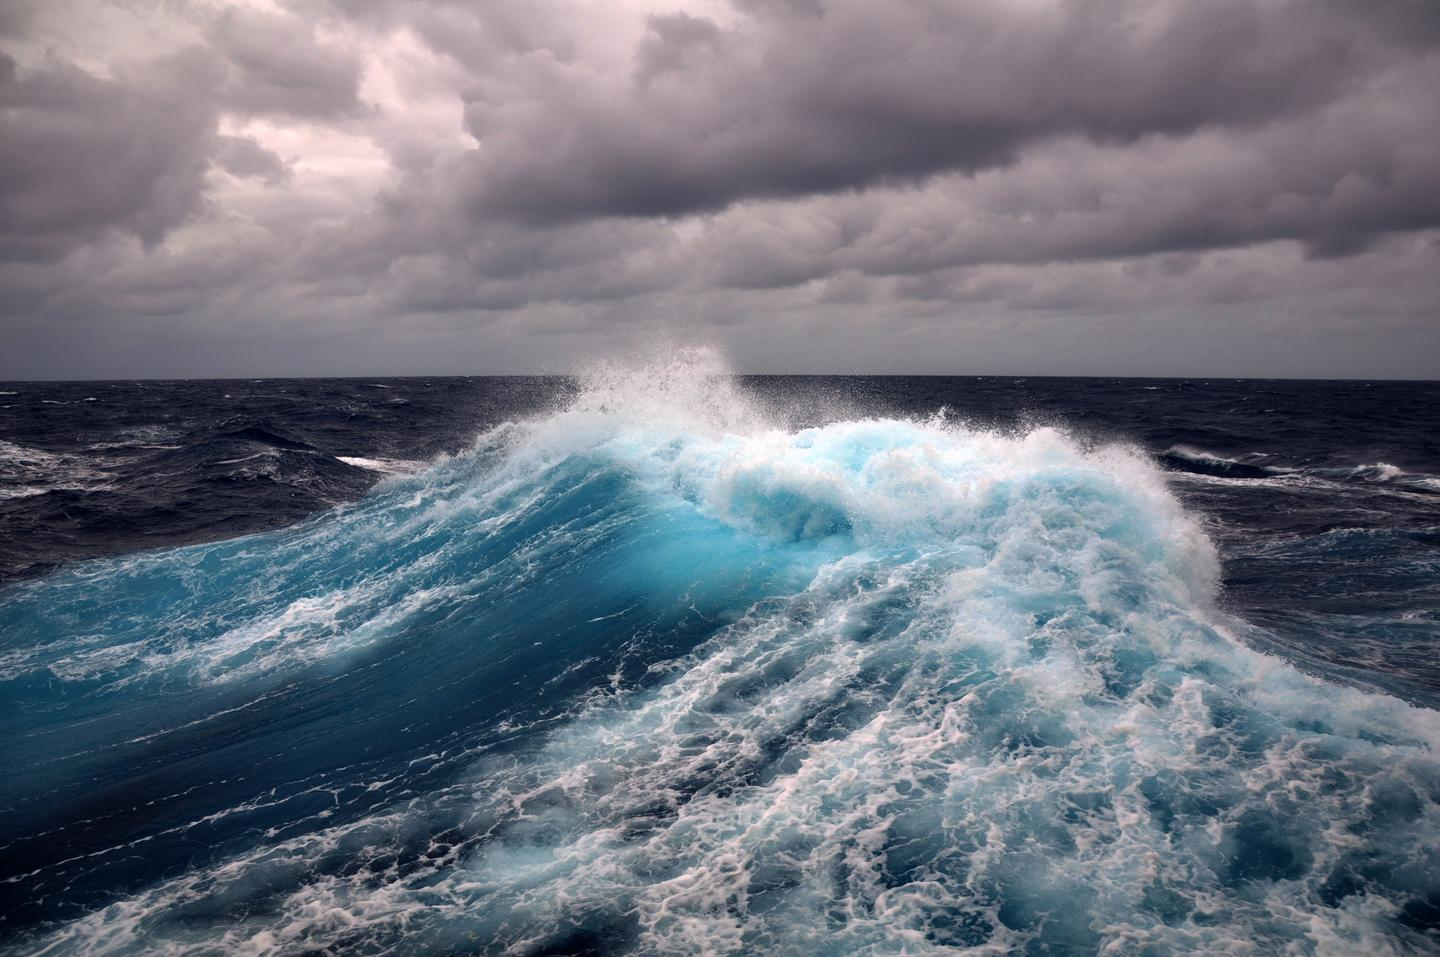 Researchers have found that ocean acidification increases the amount of nitrous oxide released into the atmosphere